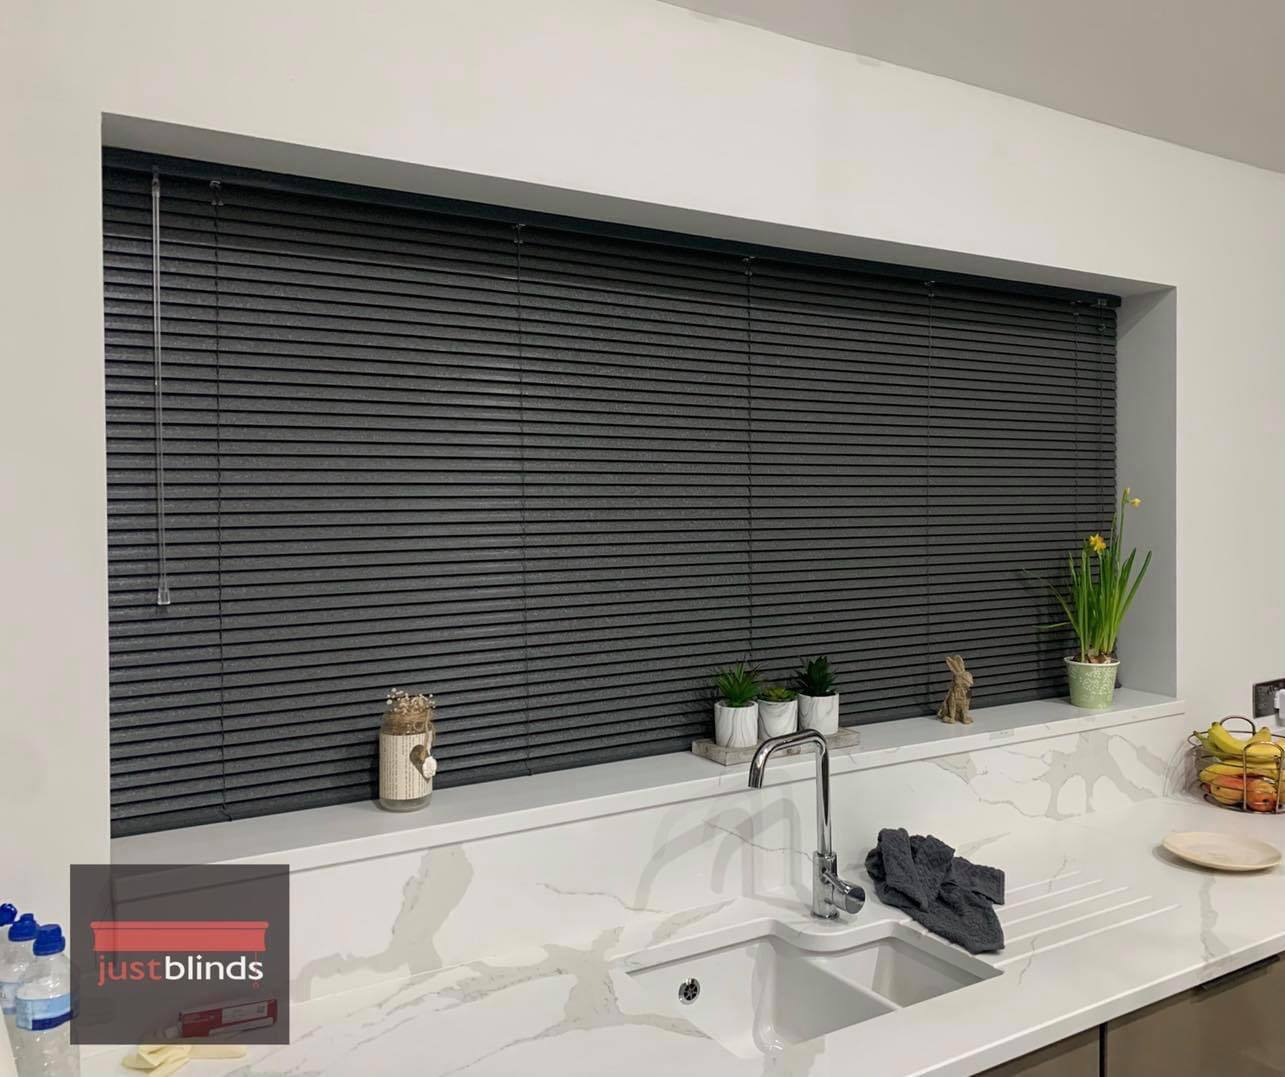 What blinds are best for kitchens?